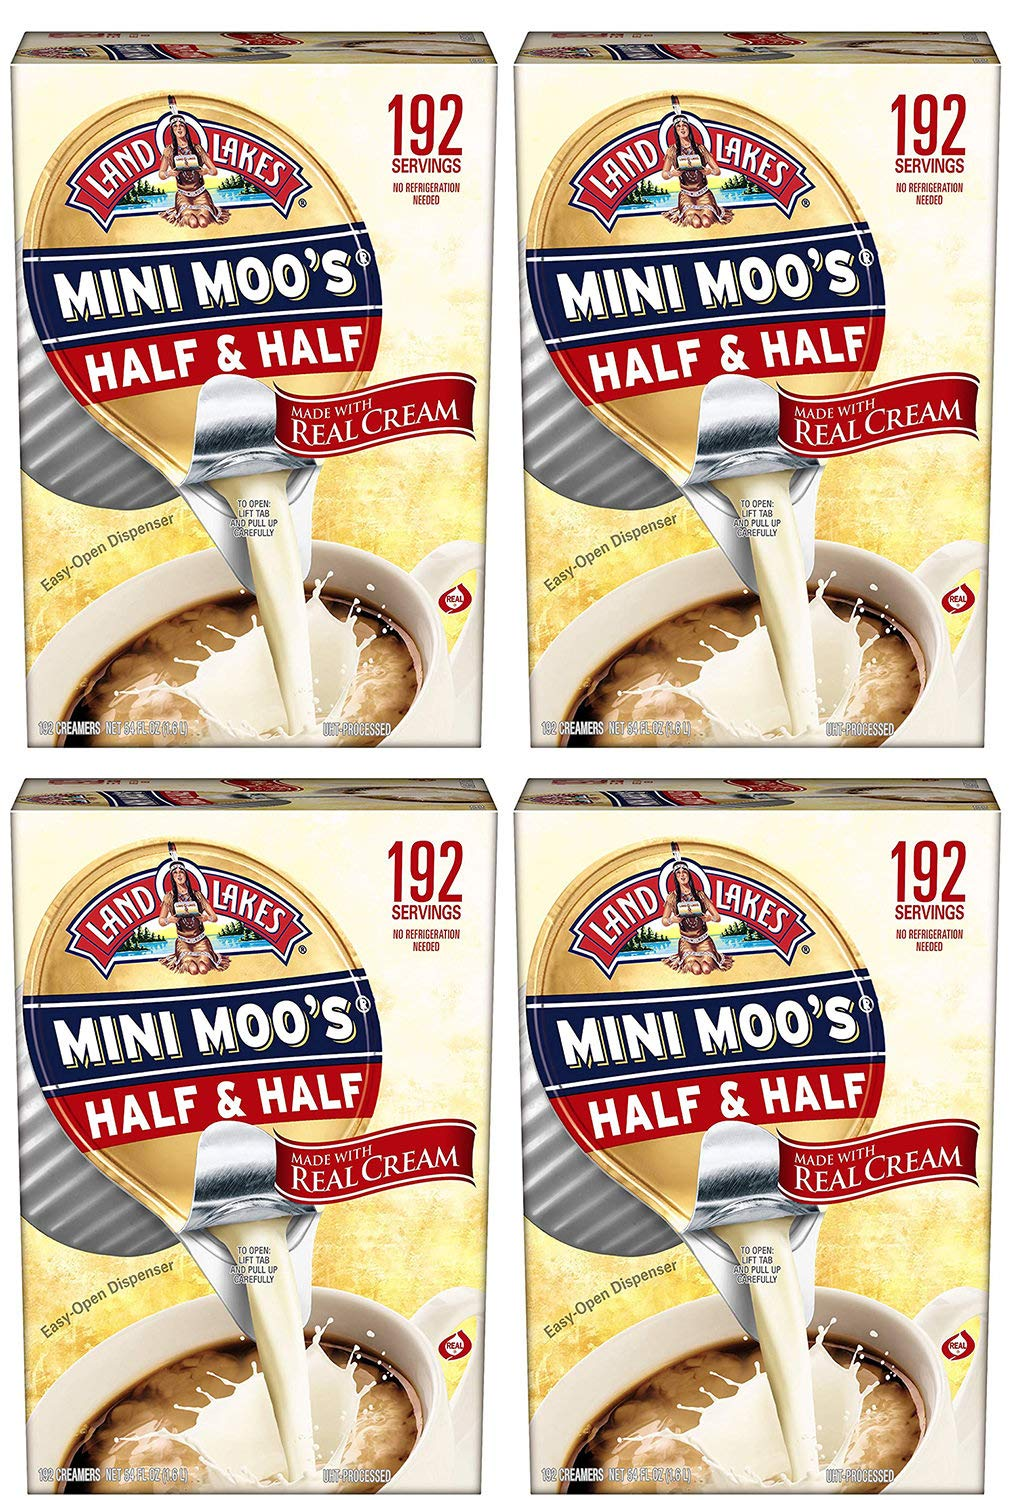 Land klMna Lakes Mini Moos Creamer Half and Half Cups 192 Count 54 fl oz (Pack May Vary), Individual Shelf-Stable Half and Half Pods for Coffee Tea Hot Chocolate, Made with Real Cream (768 Count)